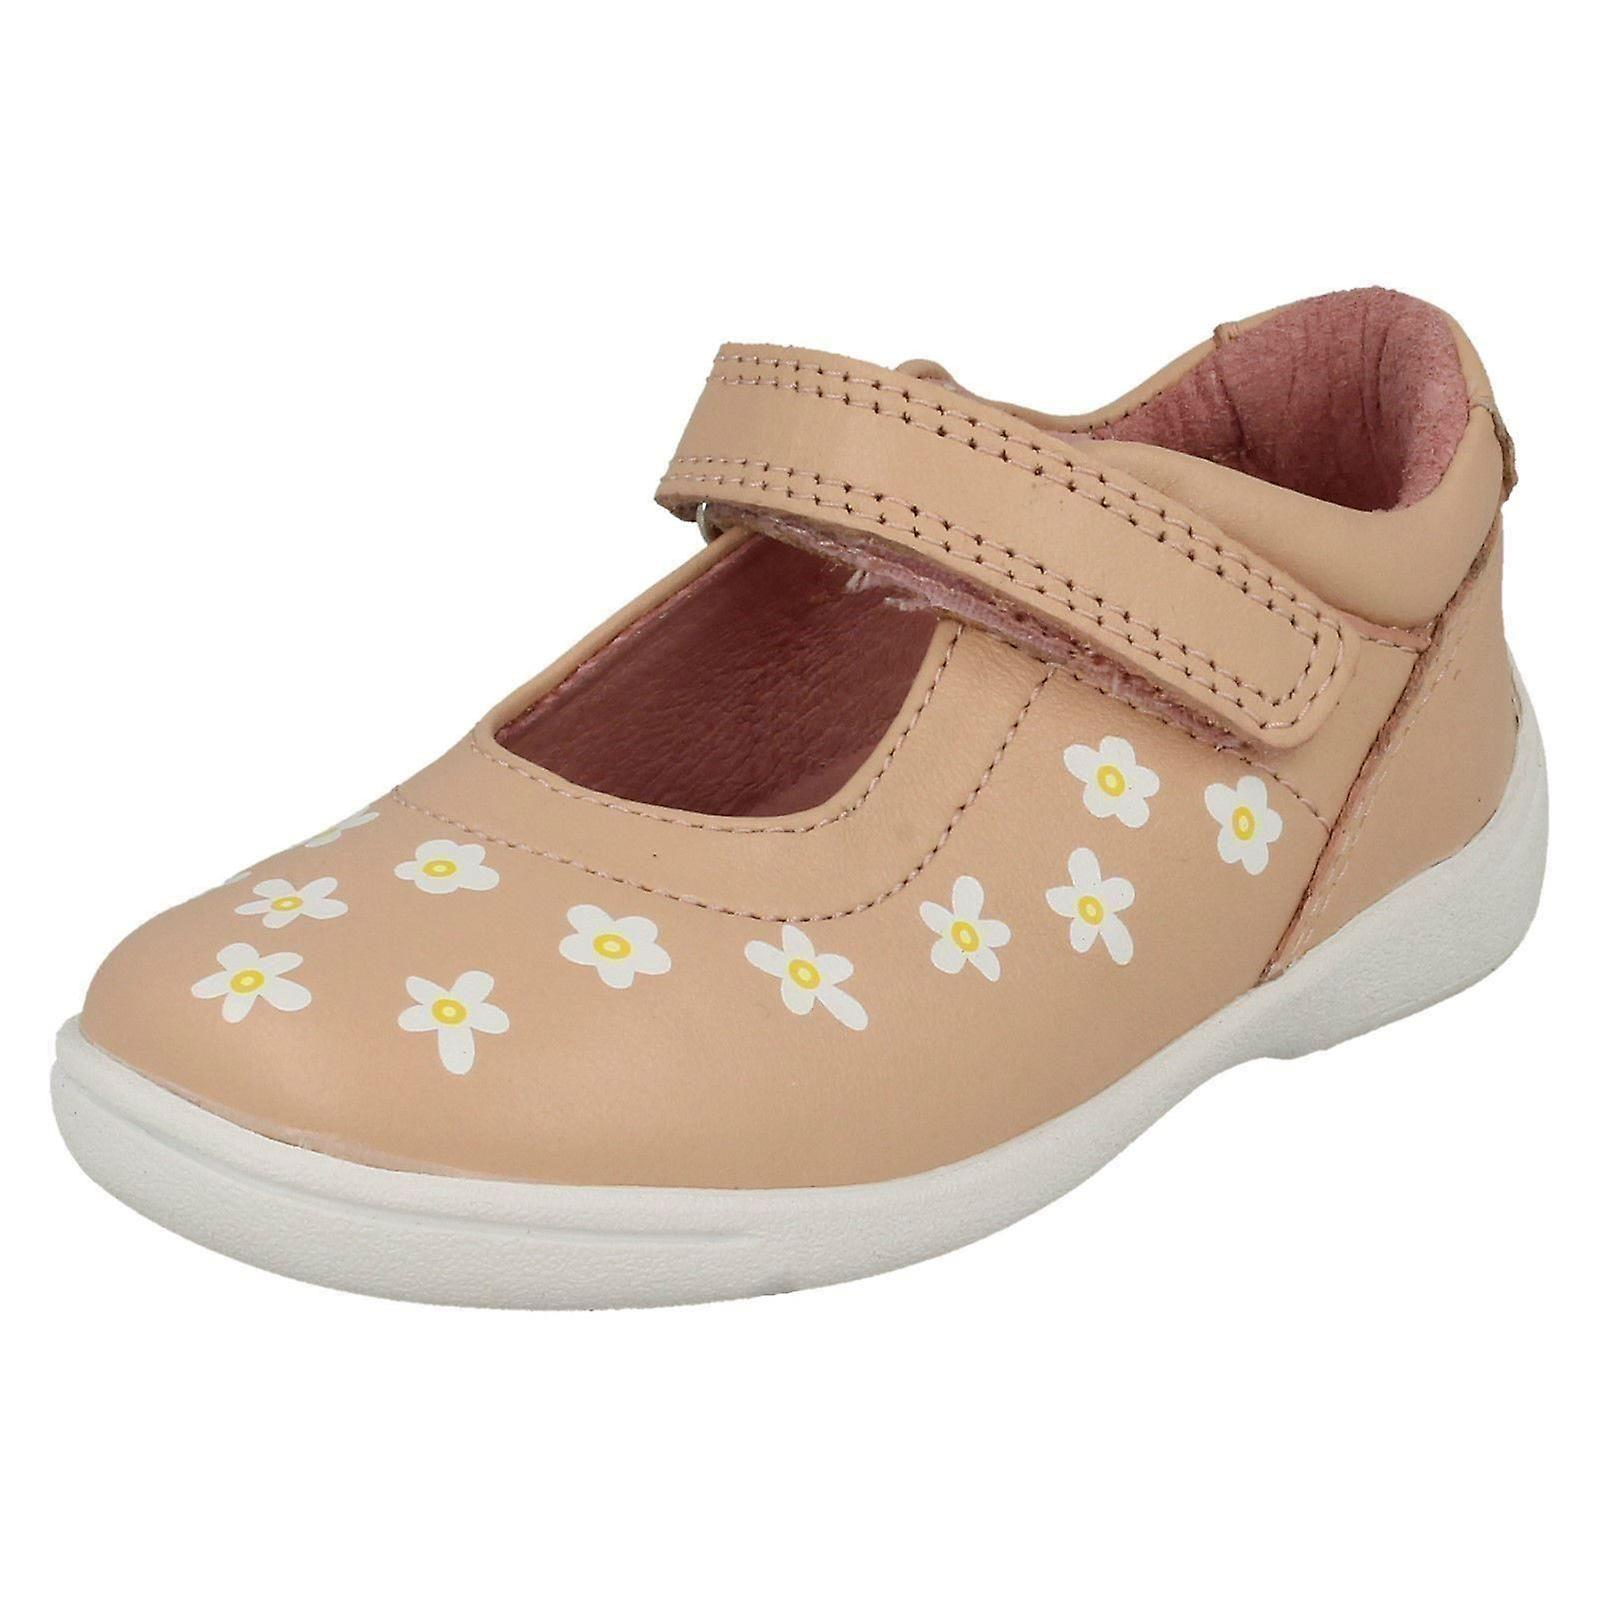 Girls Startrite Casual Flat Shoes - Shine - Pink Leather - Shoes UK Size 8.5F - EU Size 26 - US Size 9.5 ce151d